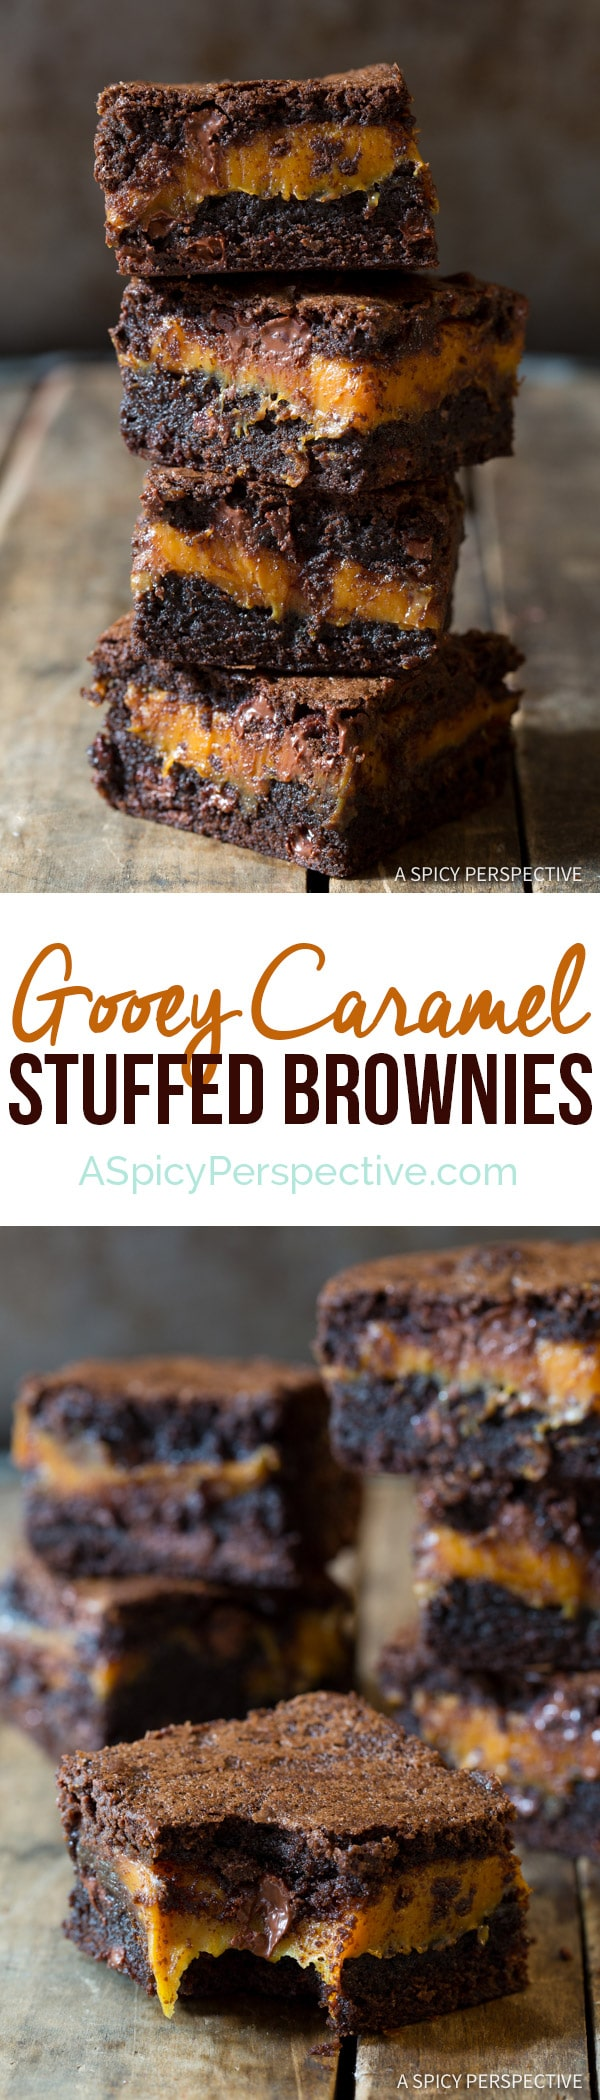 Gooey Caramel Stuffed Brownies | ASpicyPerspective.com